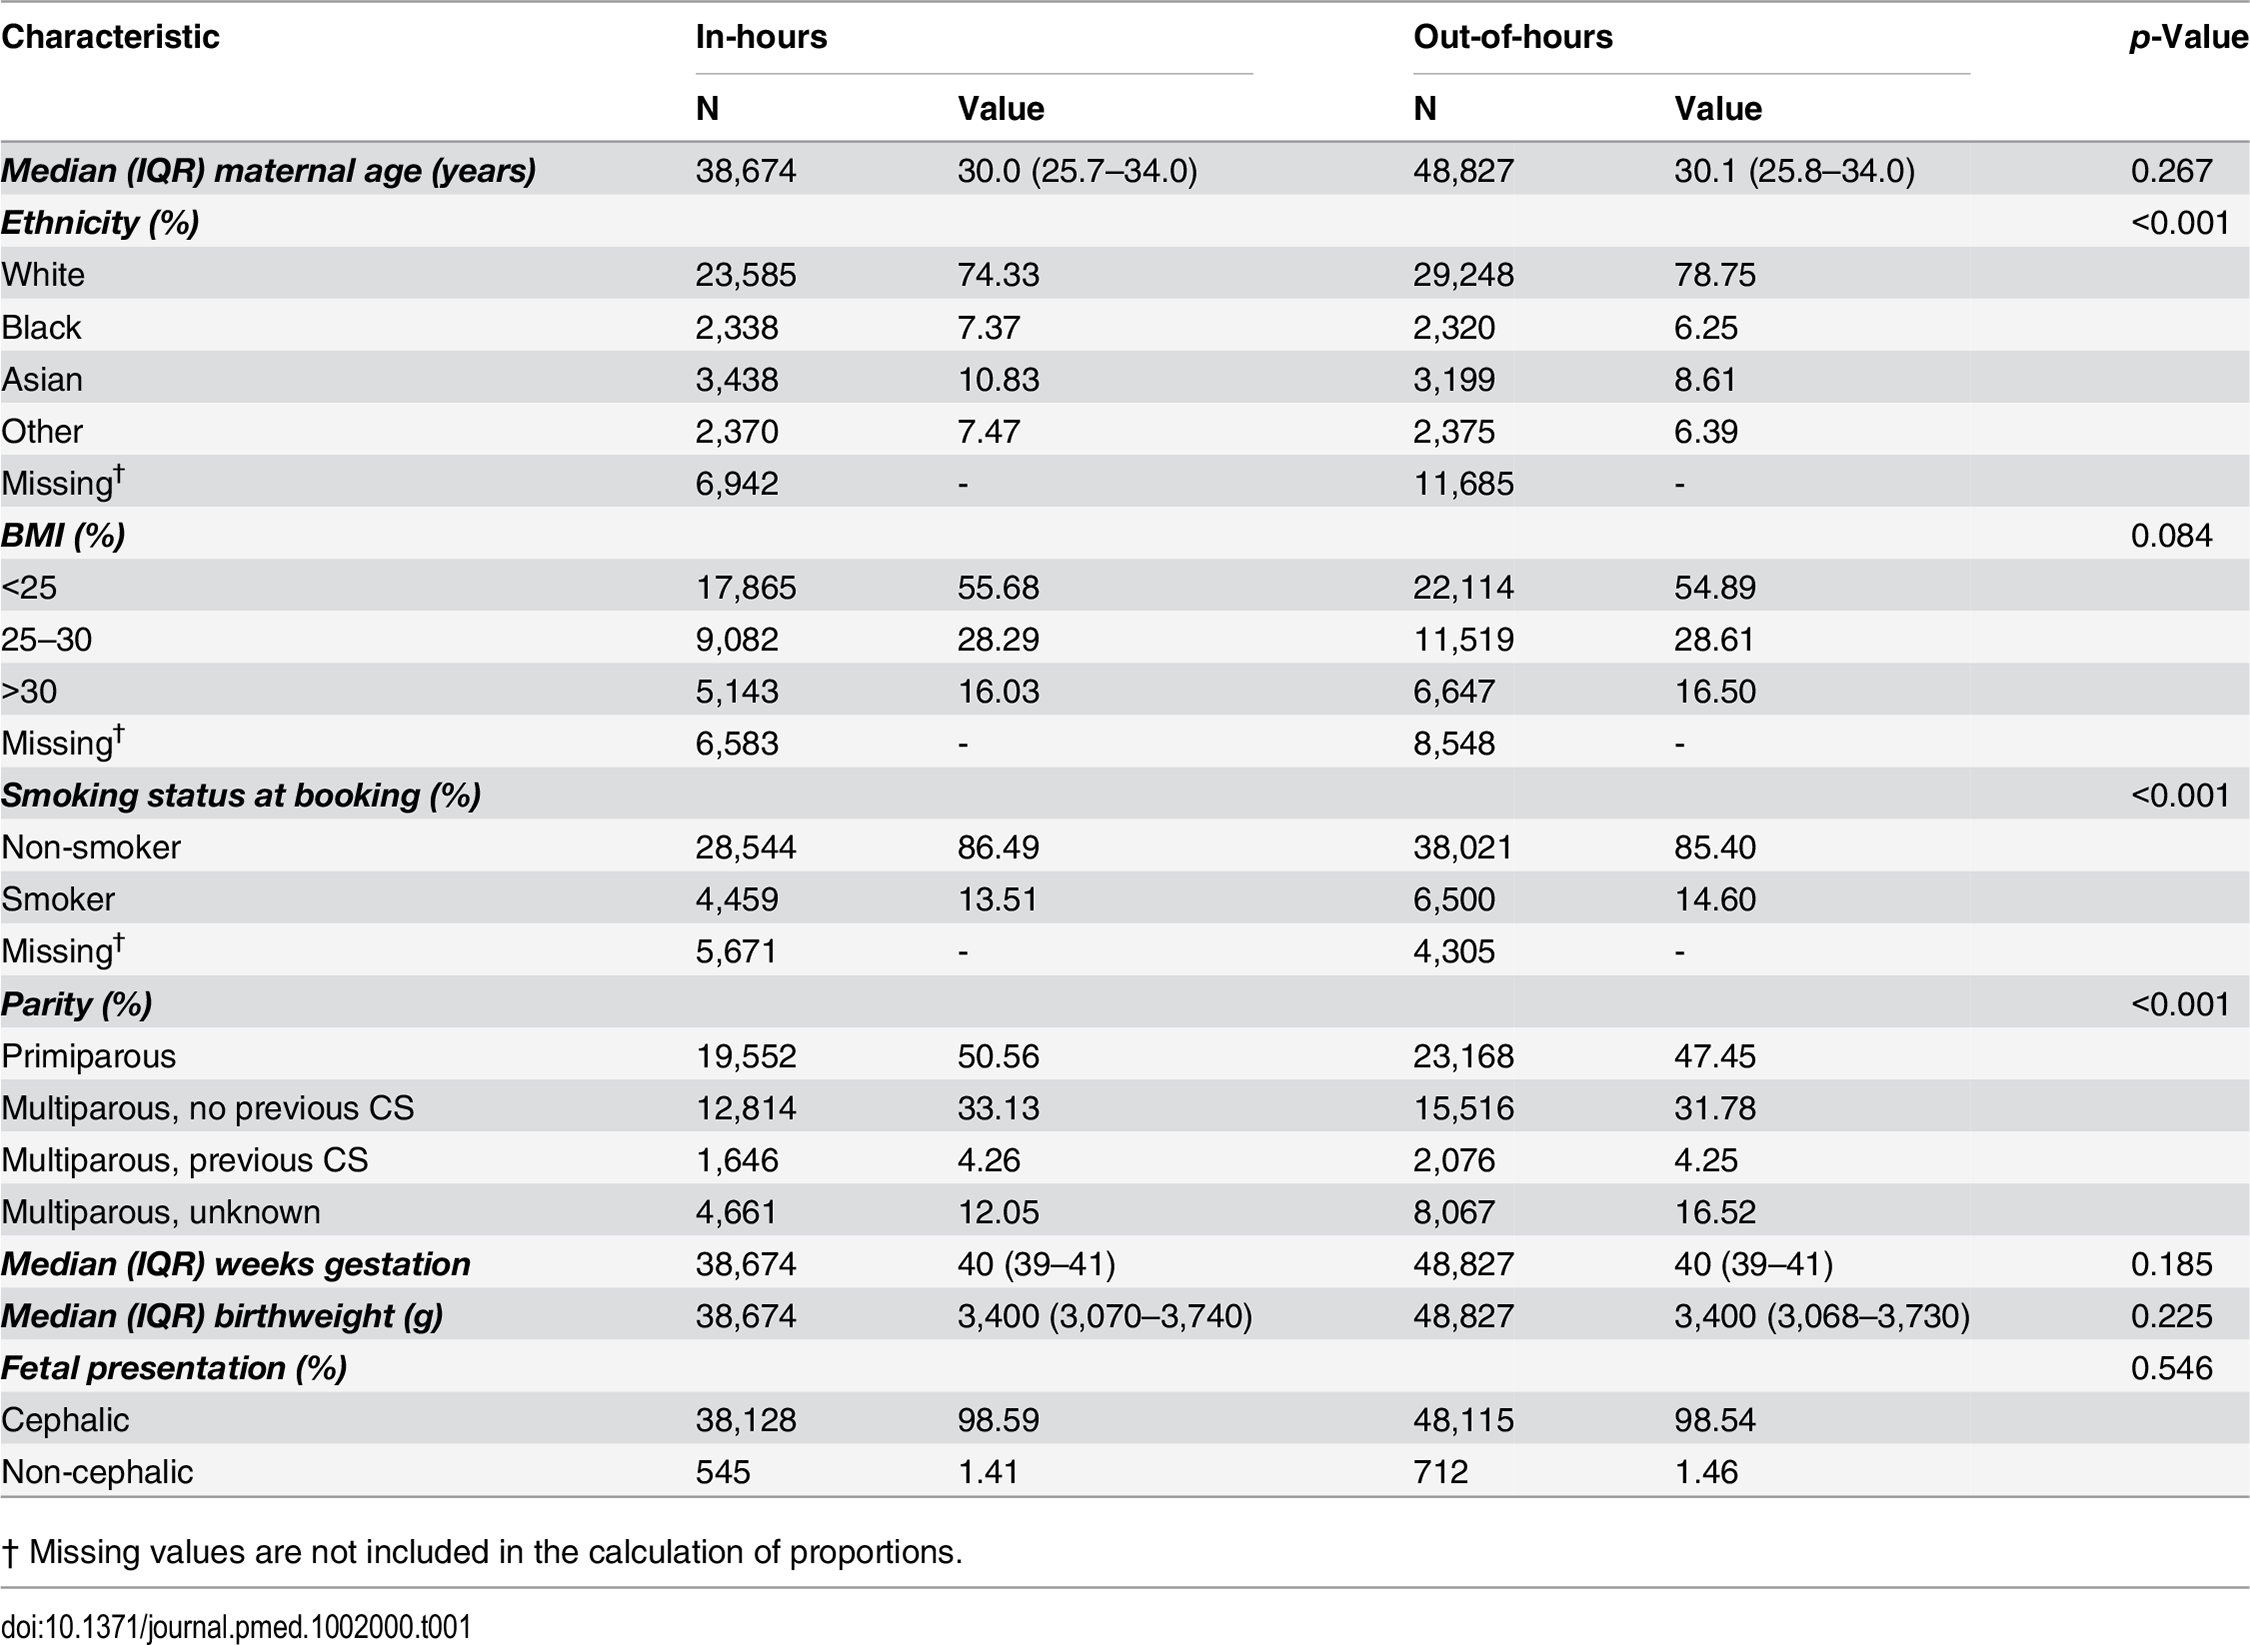 Characteristics of the cohort, comparing in-hours with out-of-hours.